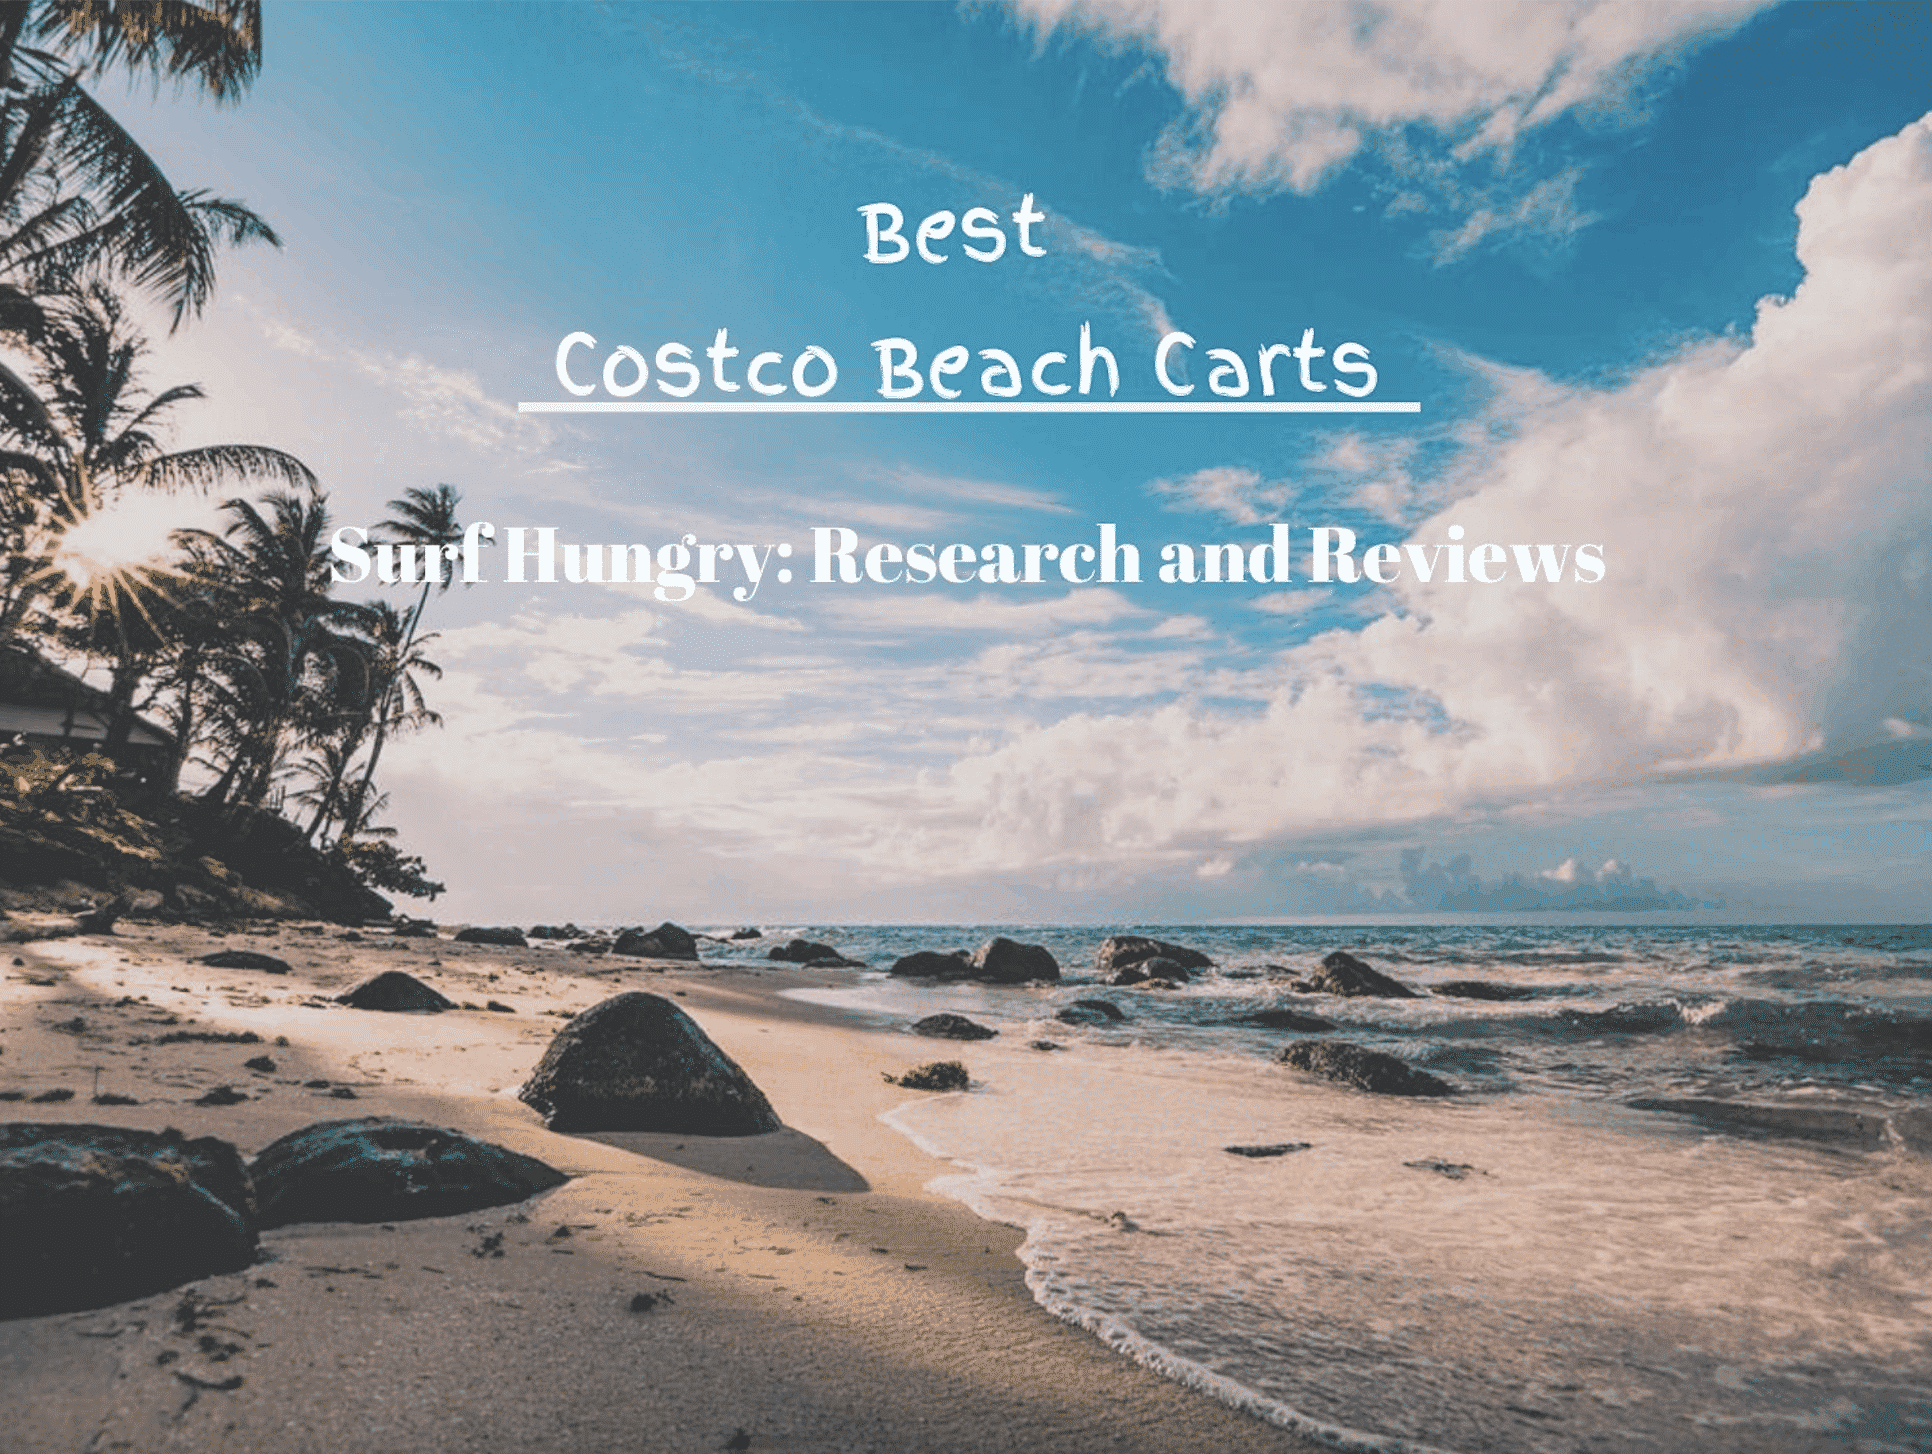 costco beach carts